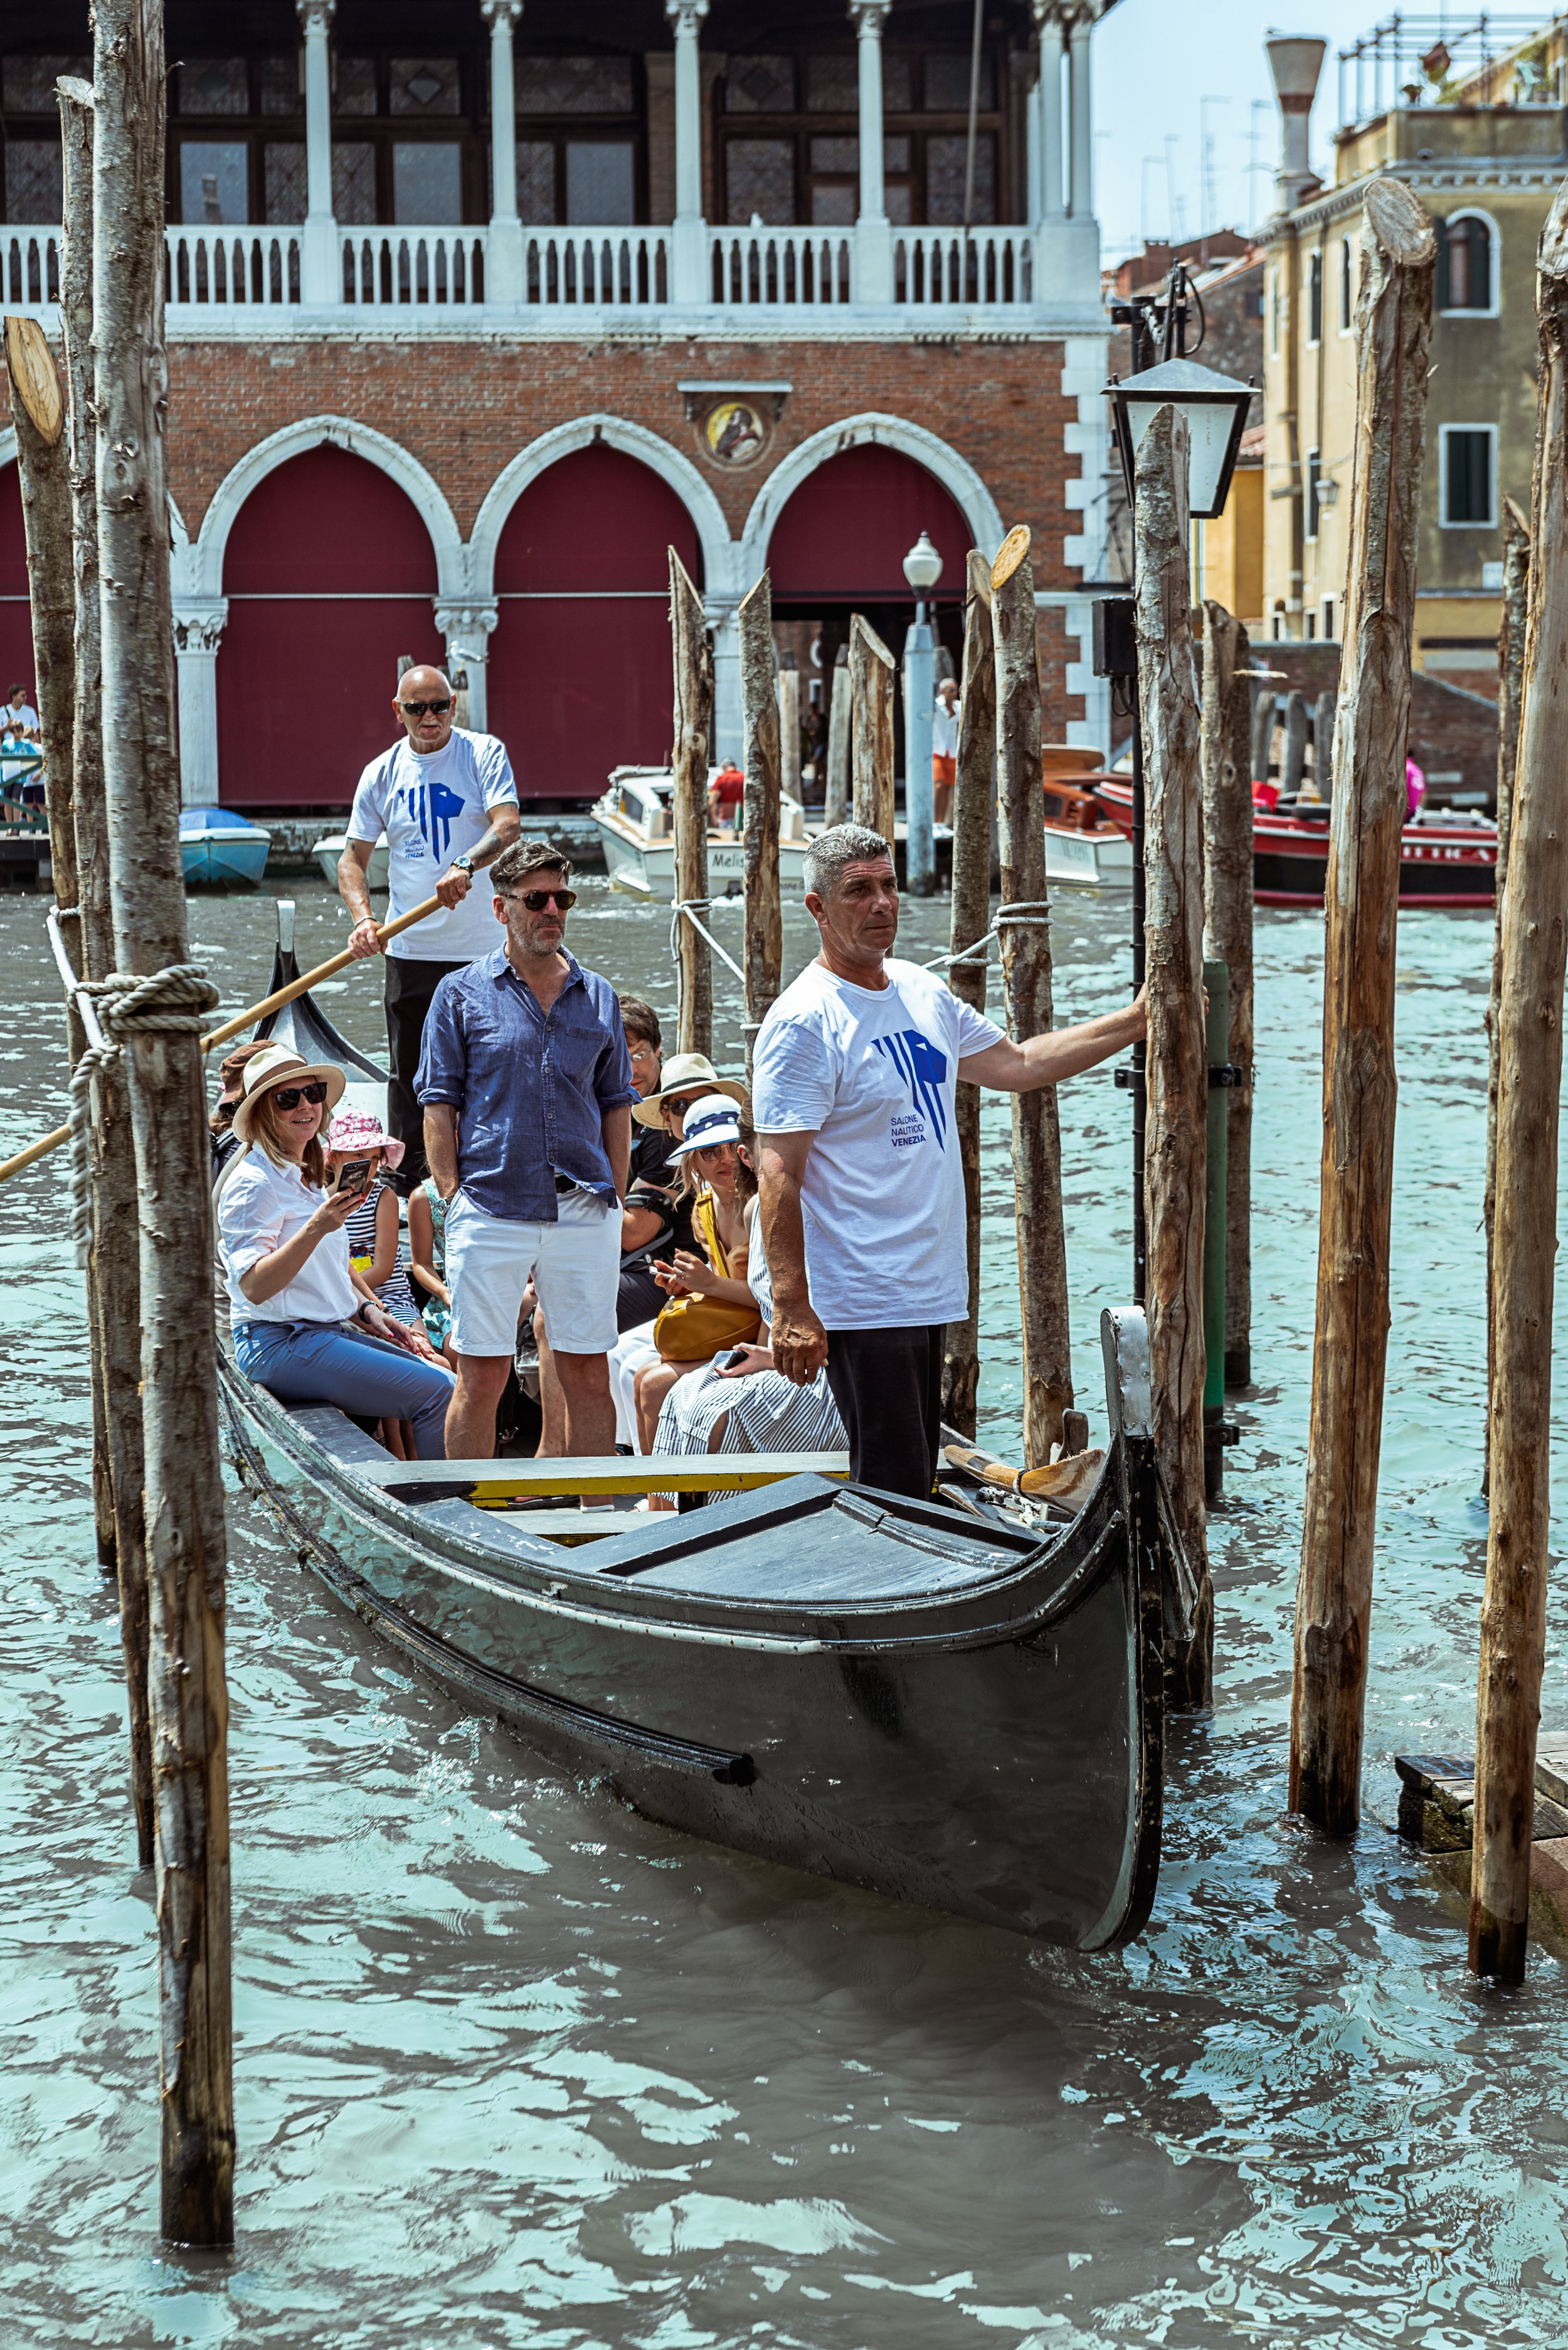 Russell Norman - shows us his Venice